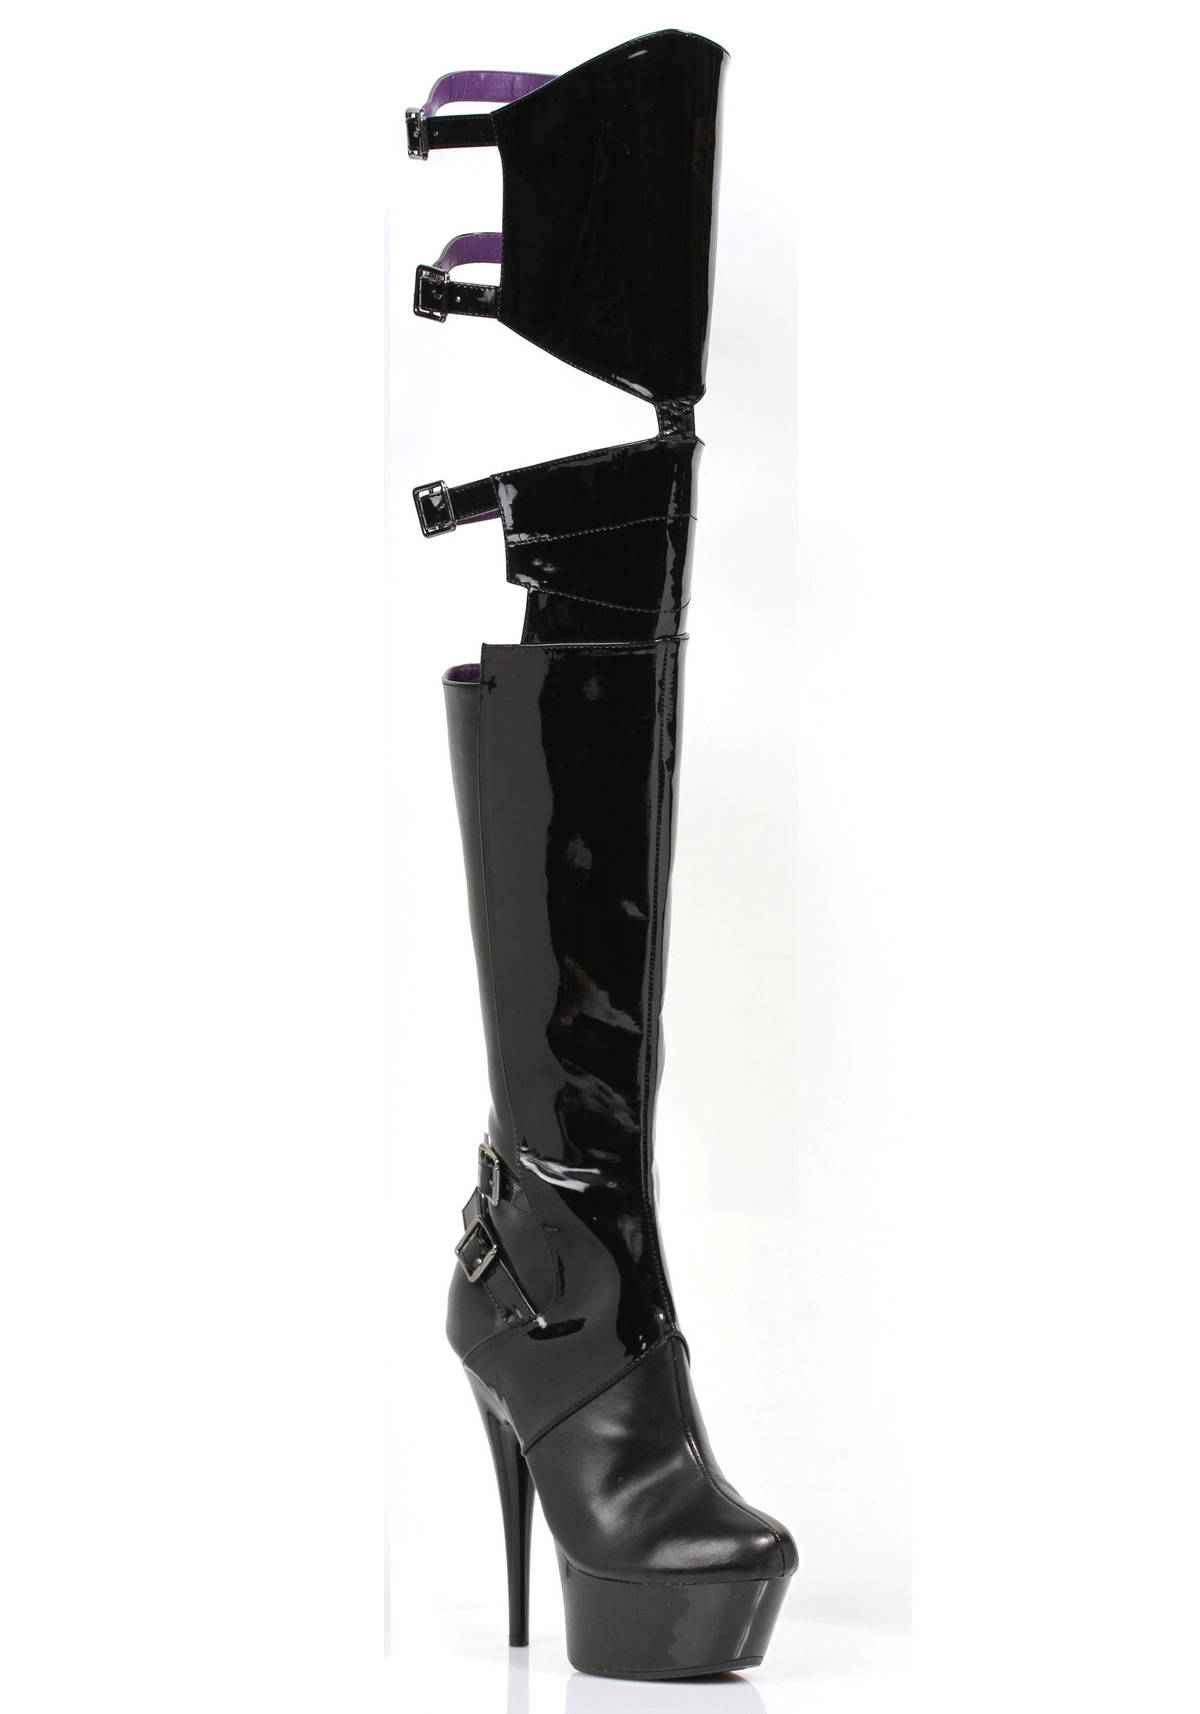 ellie shoes 609 felicia 6 inch pointed stiletto heel thigh